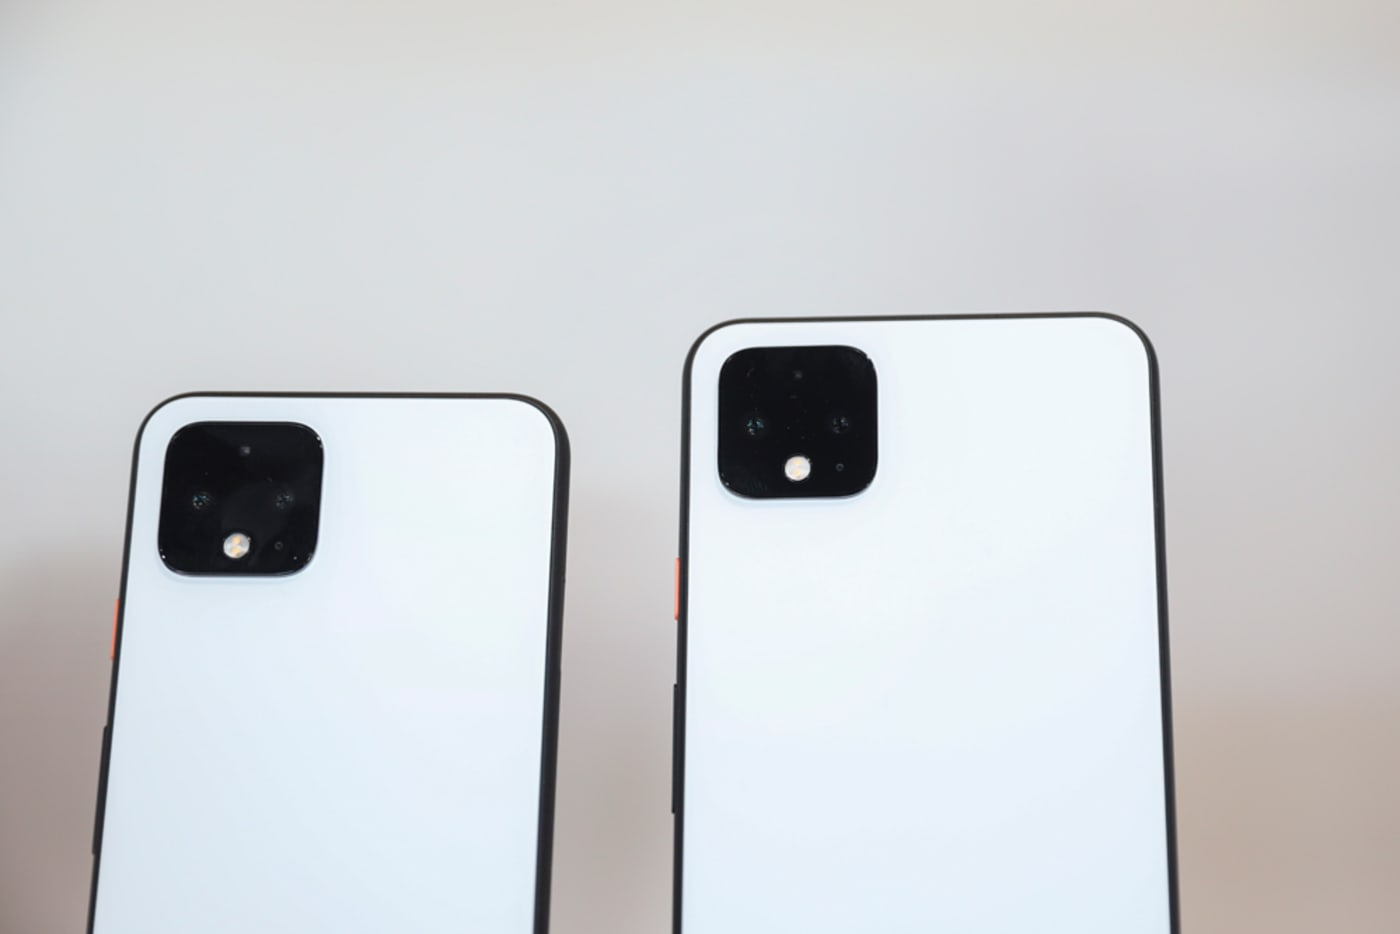 Google Pixel 4 and the Pixel 4 XL